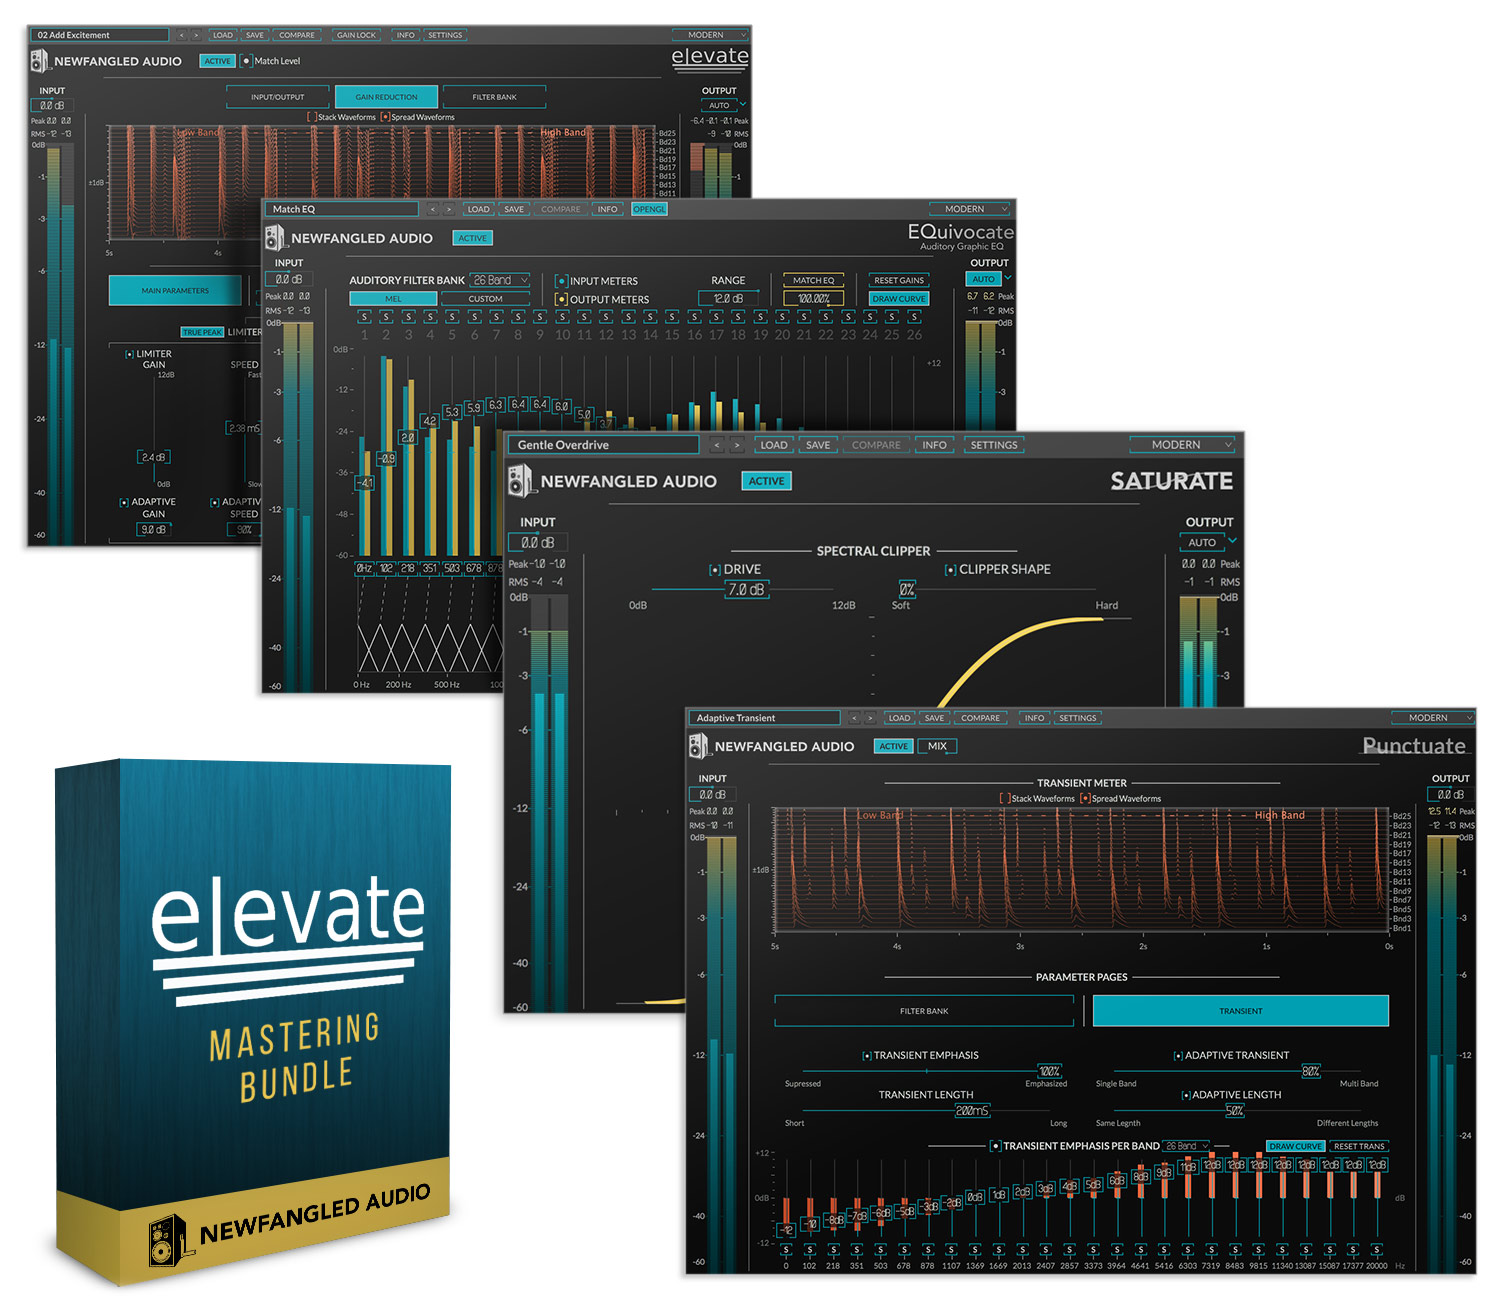 Elevate Mastering Bundle: Includes EQuivocate, Punctuate and Saturate